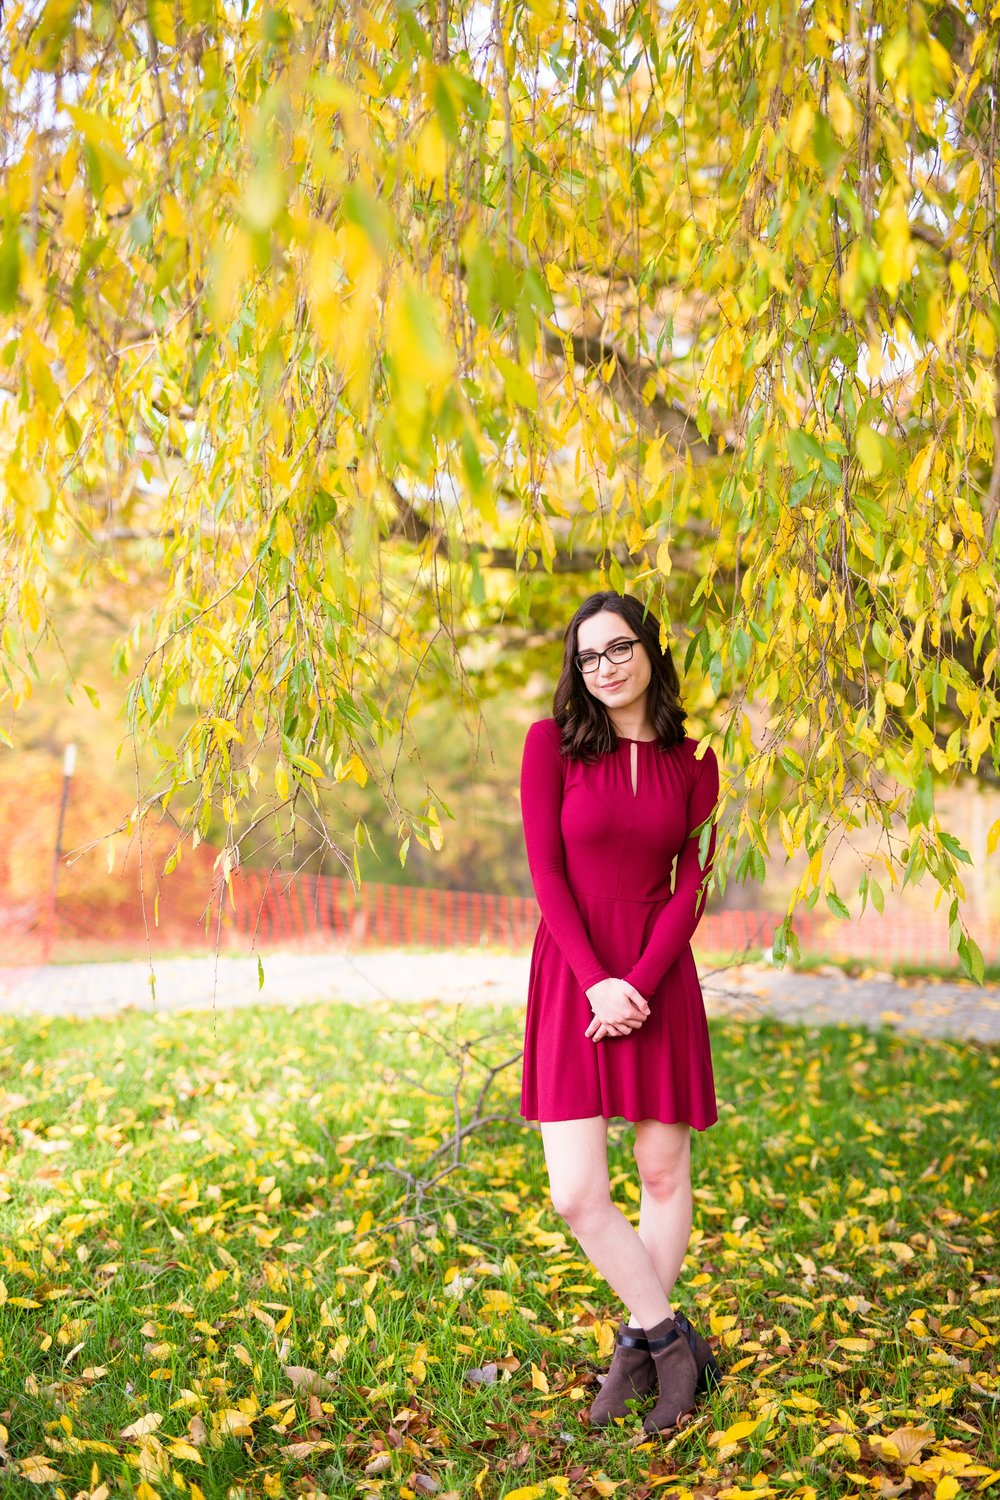 best places to take senior pictures in pittsburgh, places to take senior pictures in pittsburgh, hartwood acres senior photos, pittsburgh senior photographer